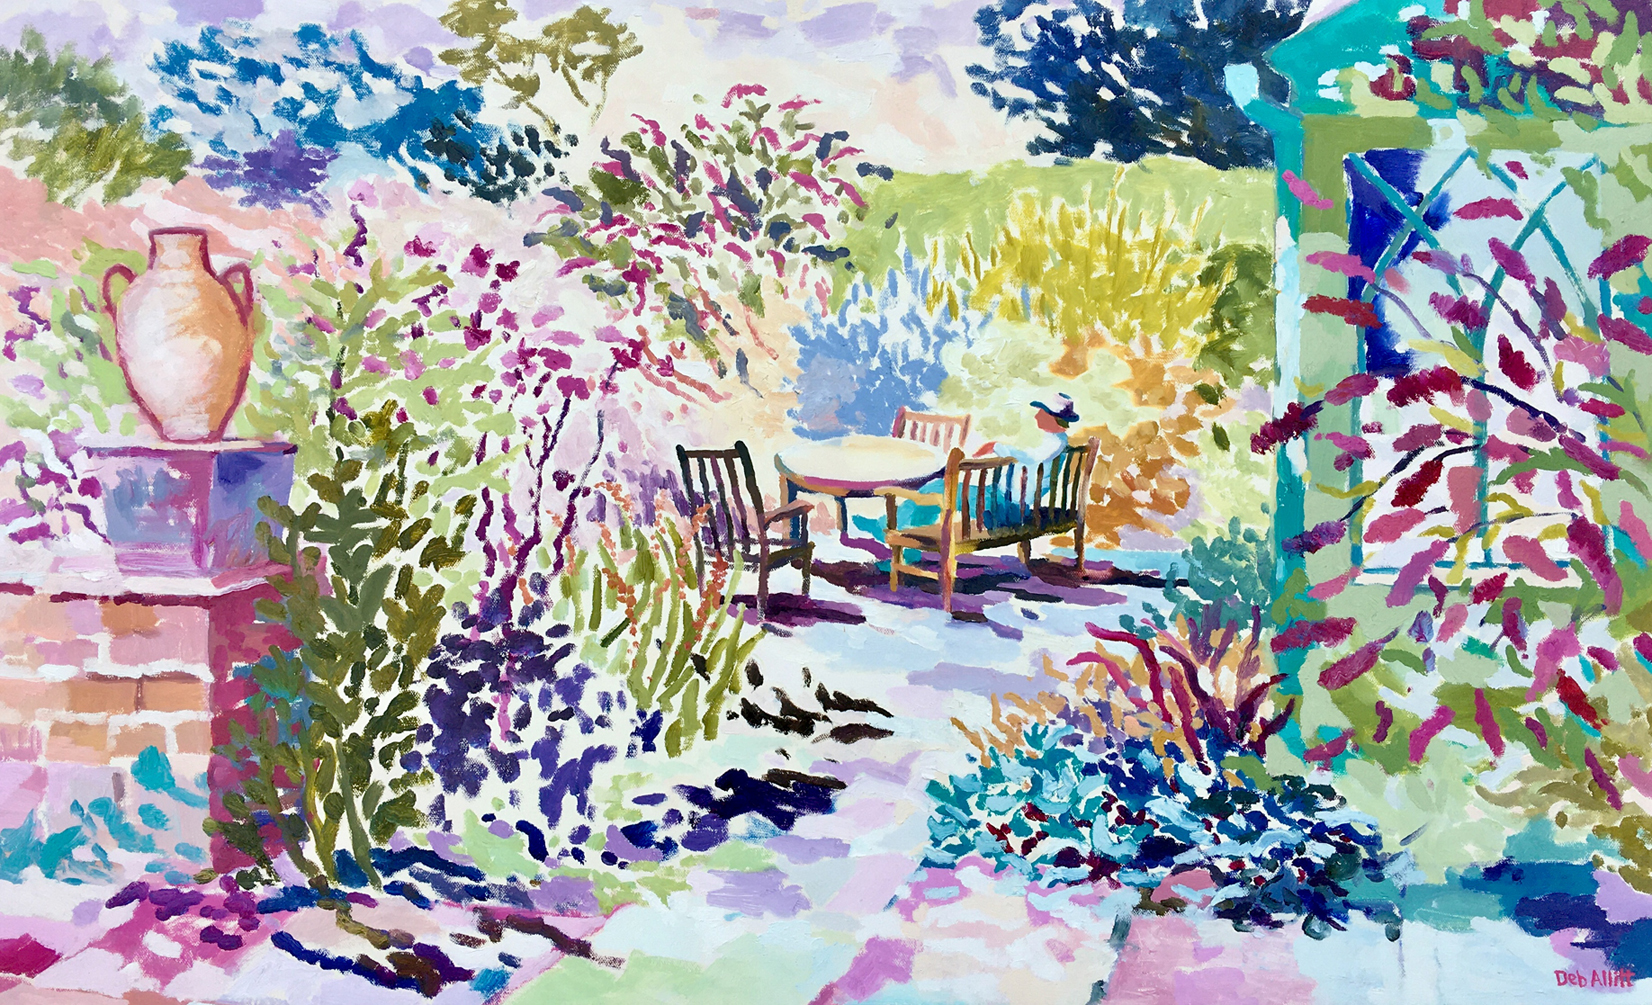 Saturday Afternoon in the Garden. Oil on canvas. 60 x 97 cm (sold)